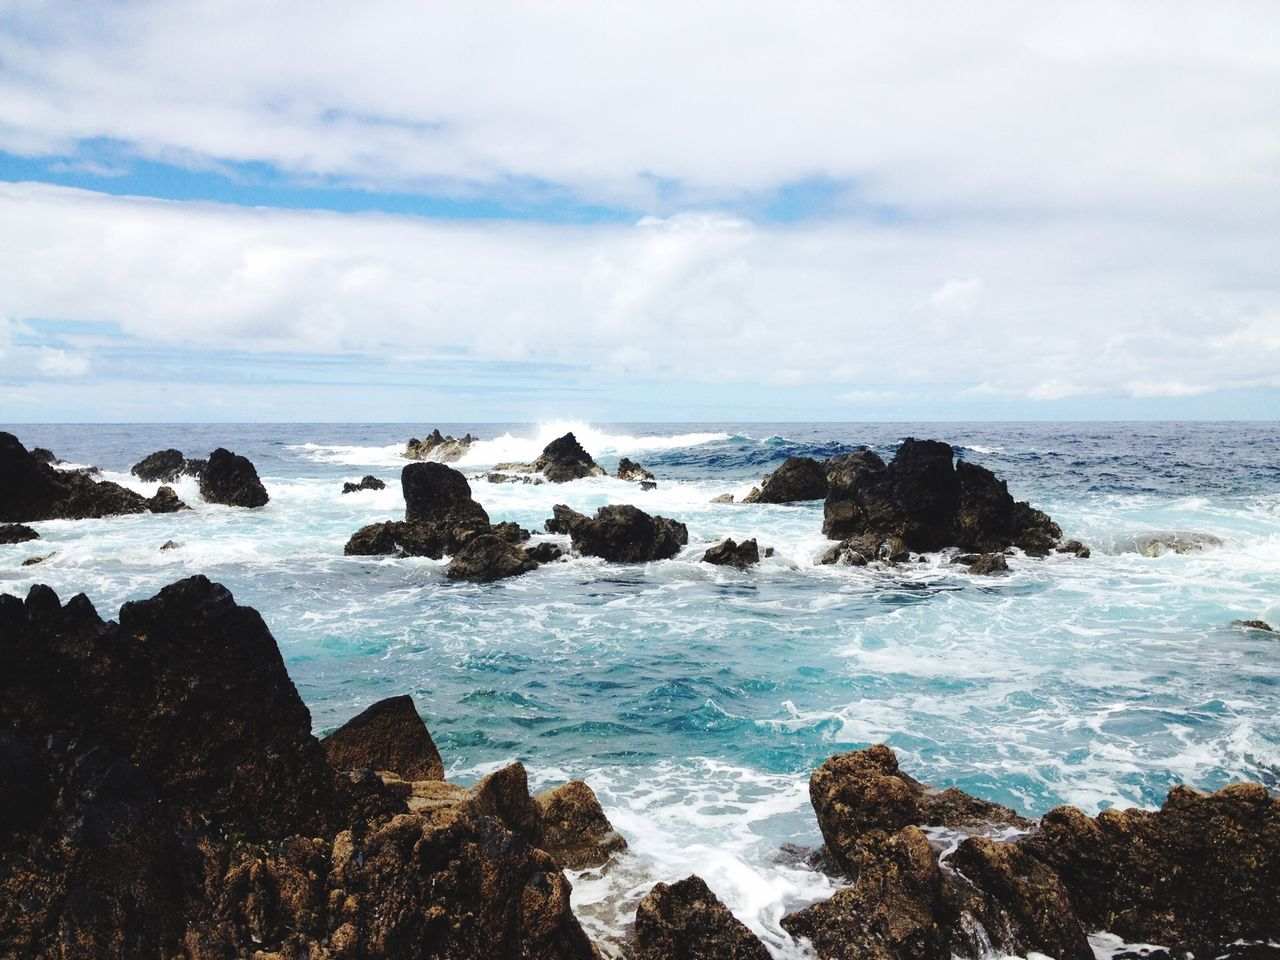 Scenic View Of Rocky Shore And Sea Against Cloudy Sky